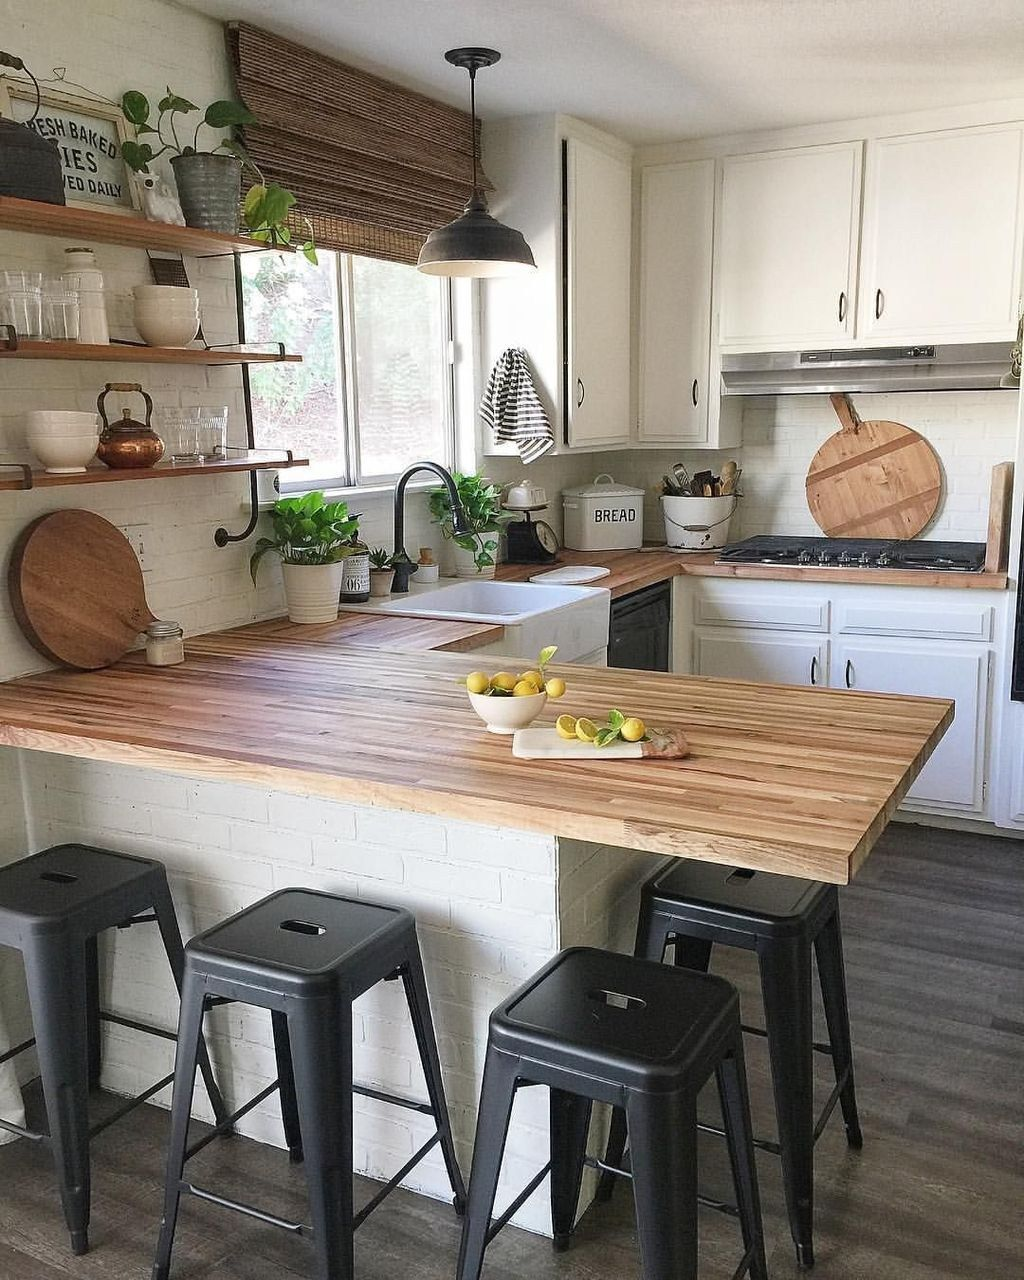 Kitchen with no window   stunning kitchen decoration ideas with rustic farmhouse style